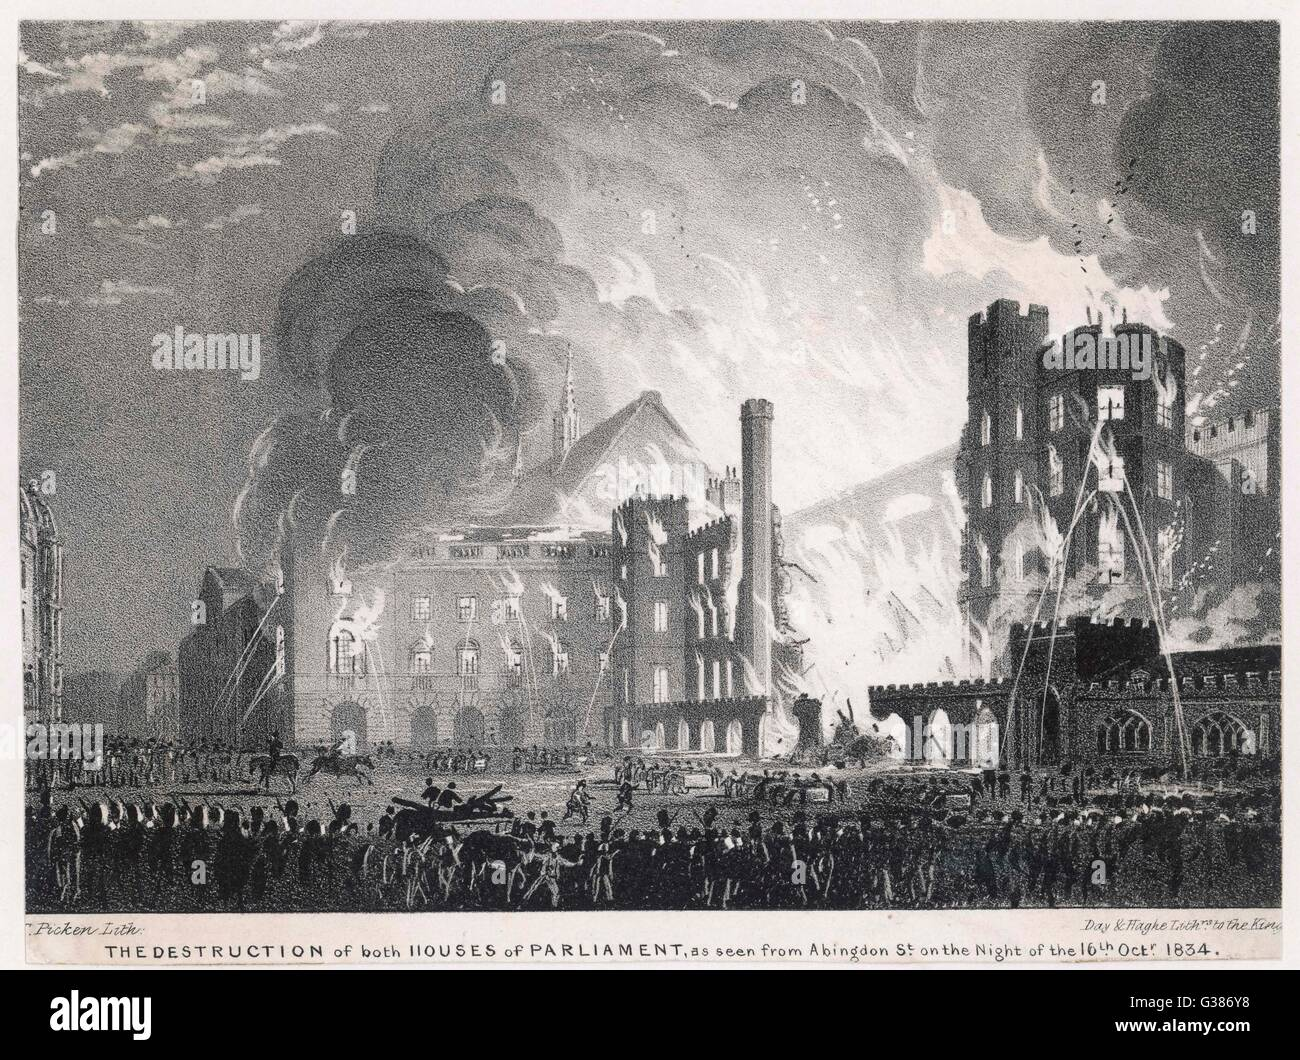 Parliament burning down.         Date: 1834 - Stock Image